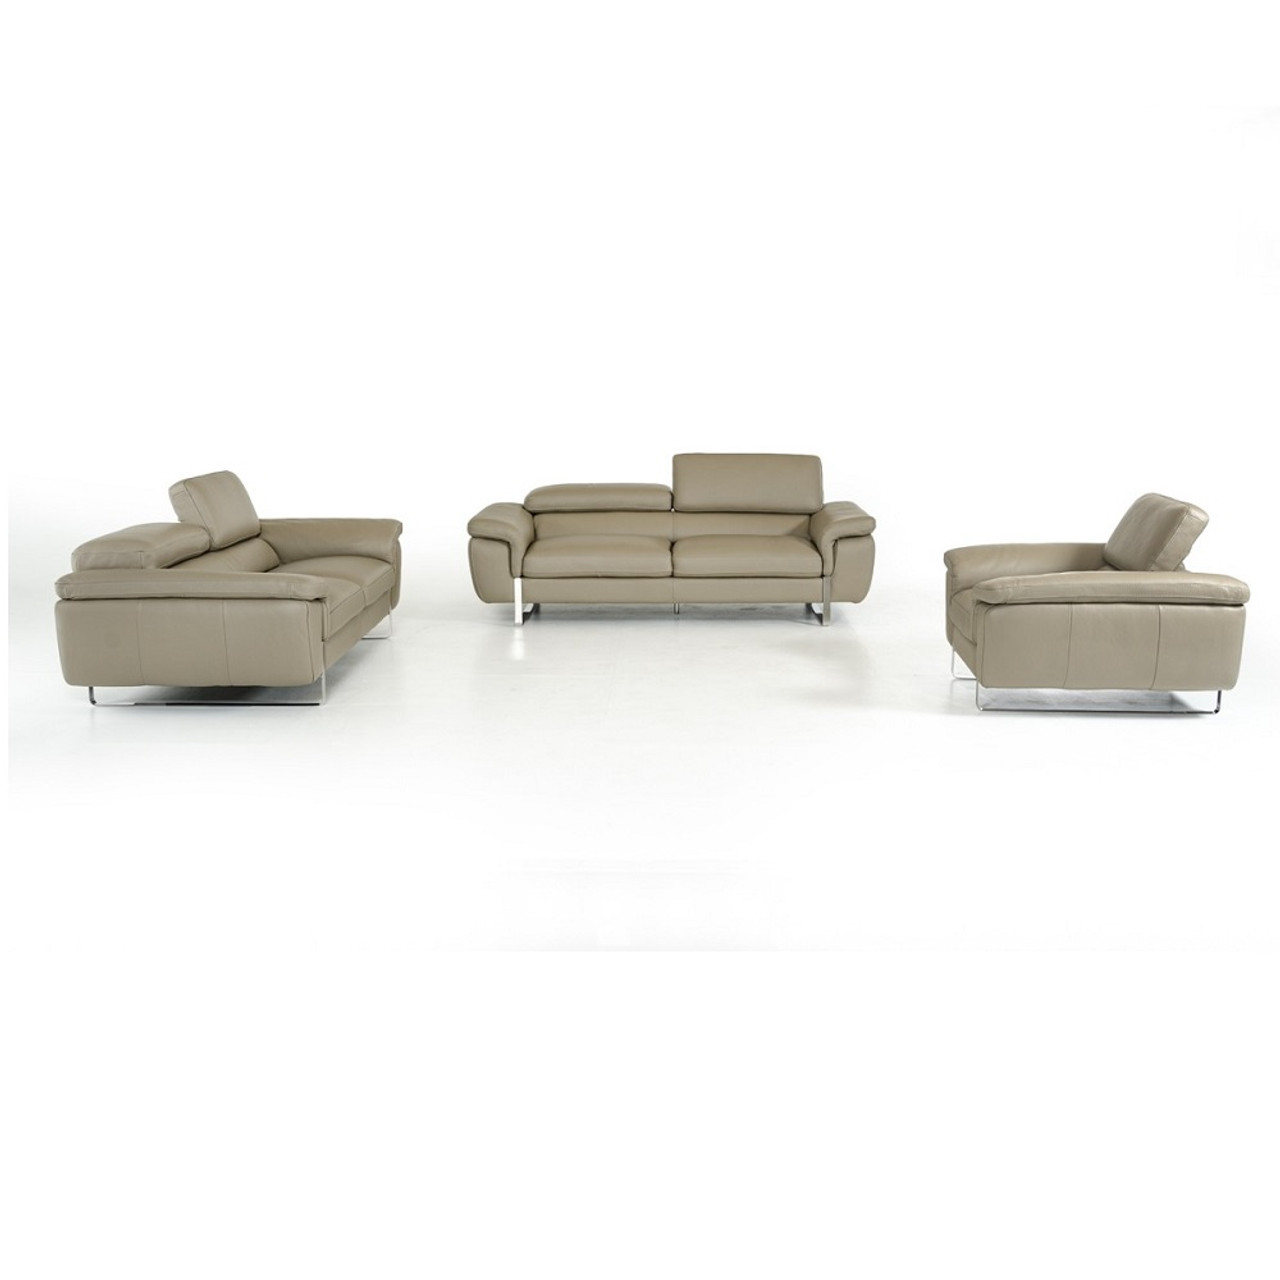 David Ferarri Highline Italian Modern Grey Leather Sofa Set